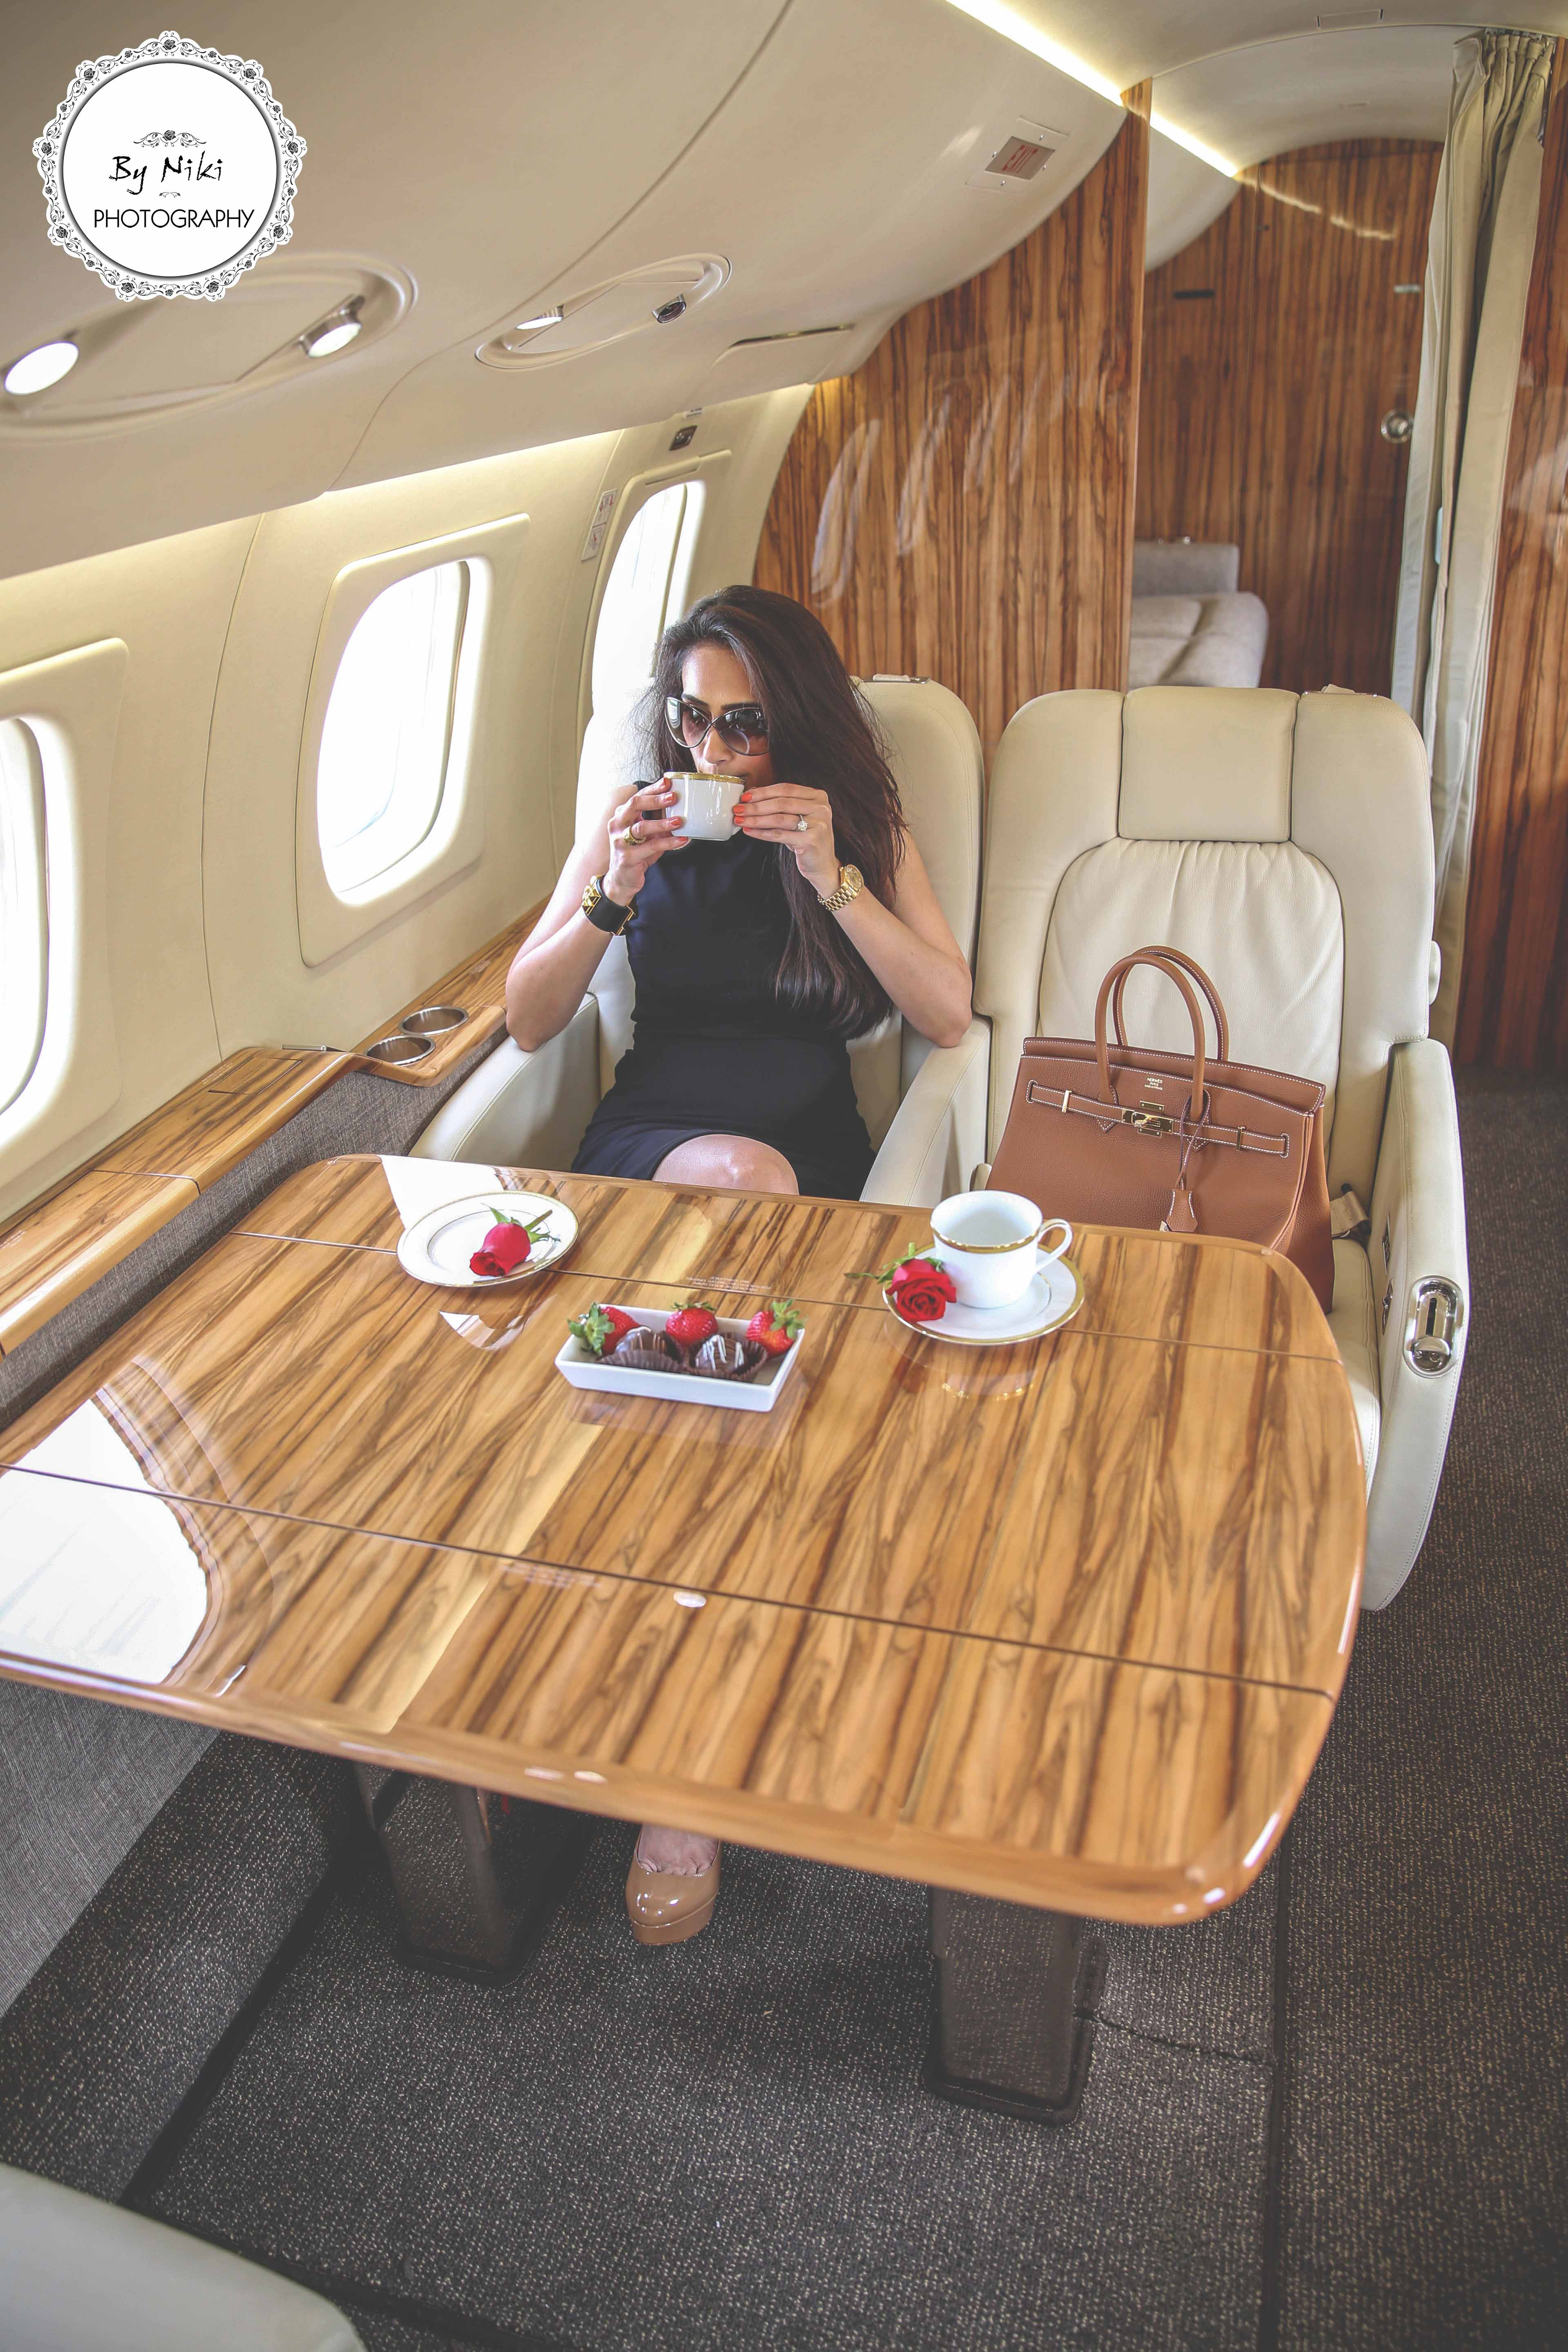 Luxury Life at 30000 Feet  By Niki Photography